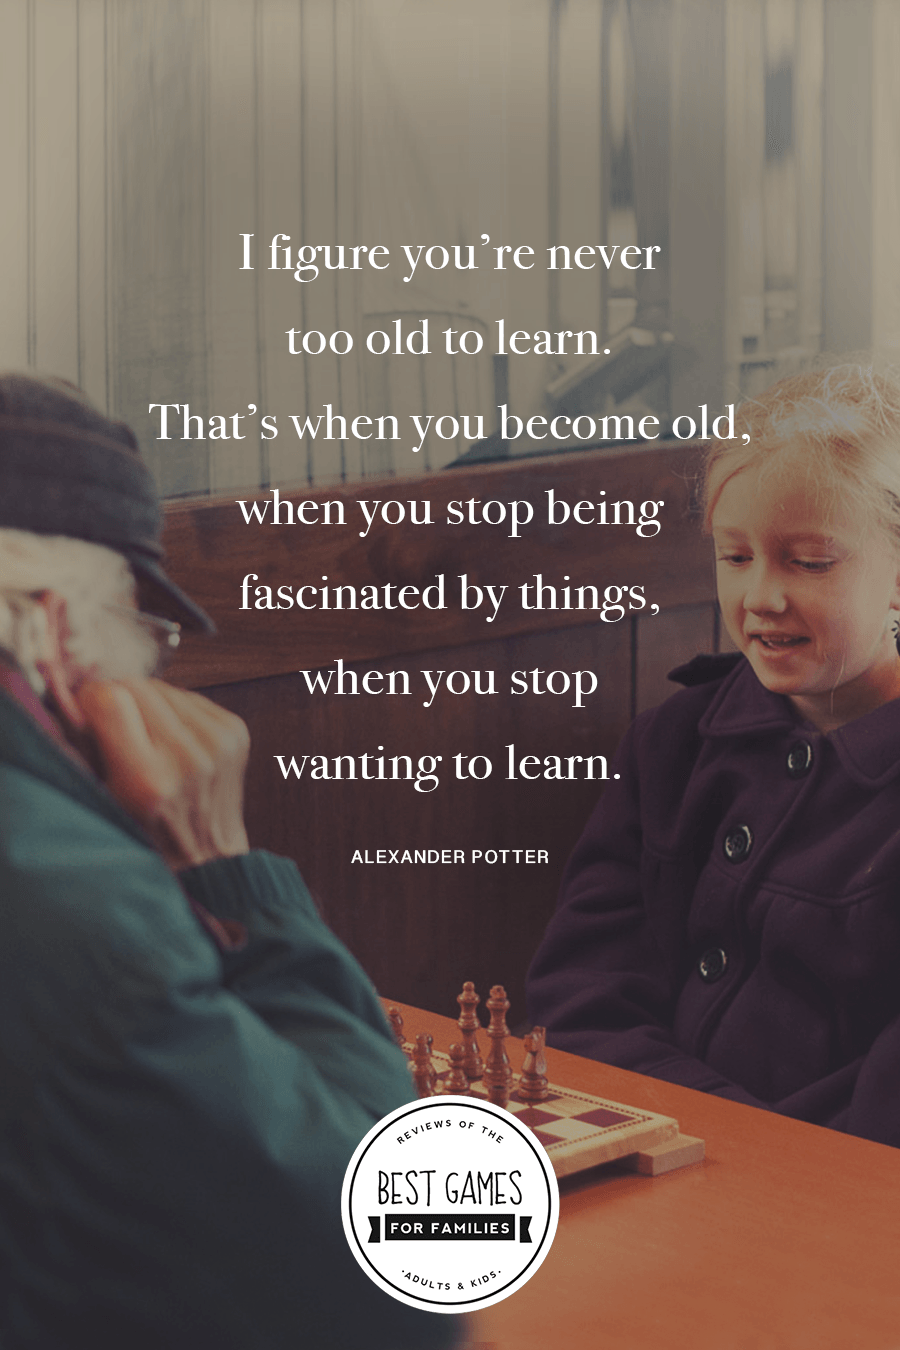 I figure you're never too old to learn. That's when you become old, when you stop being fascinated by things, when you stop wanting to learn.#quote #gamenight #familygamenight *Great list of board games to play with grandparents